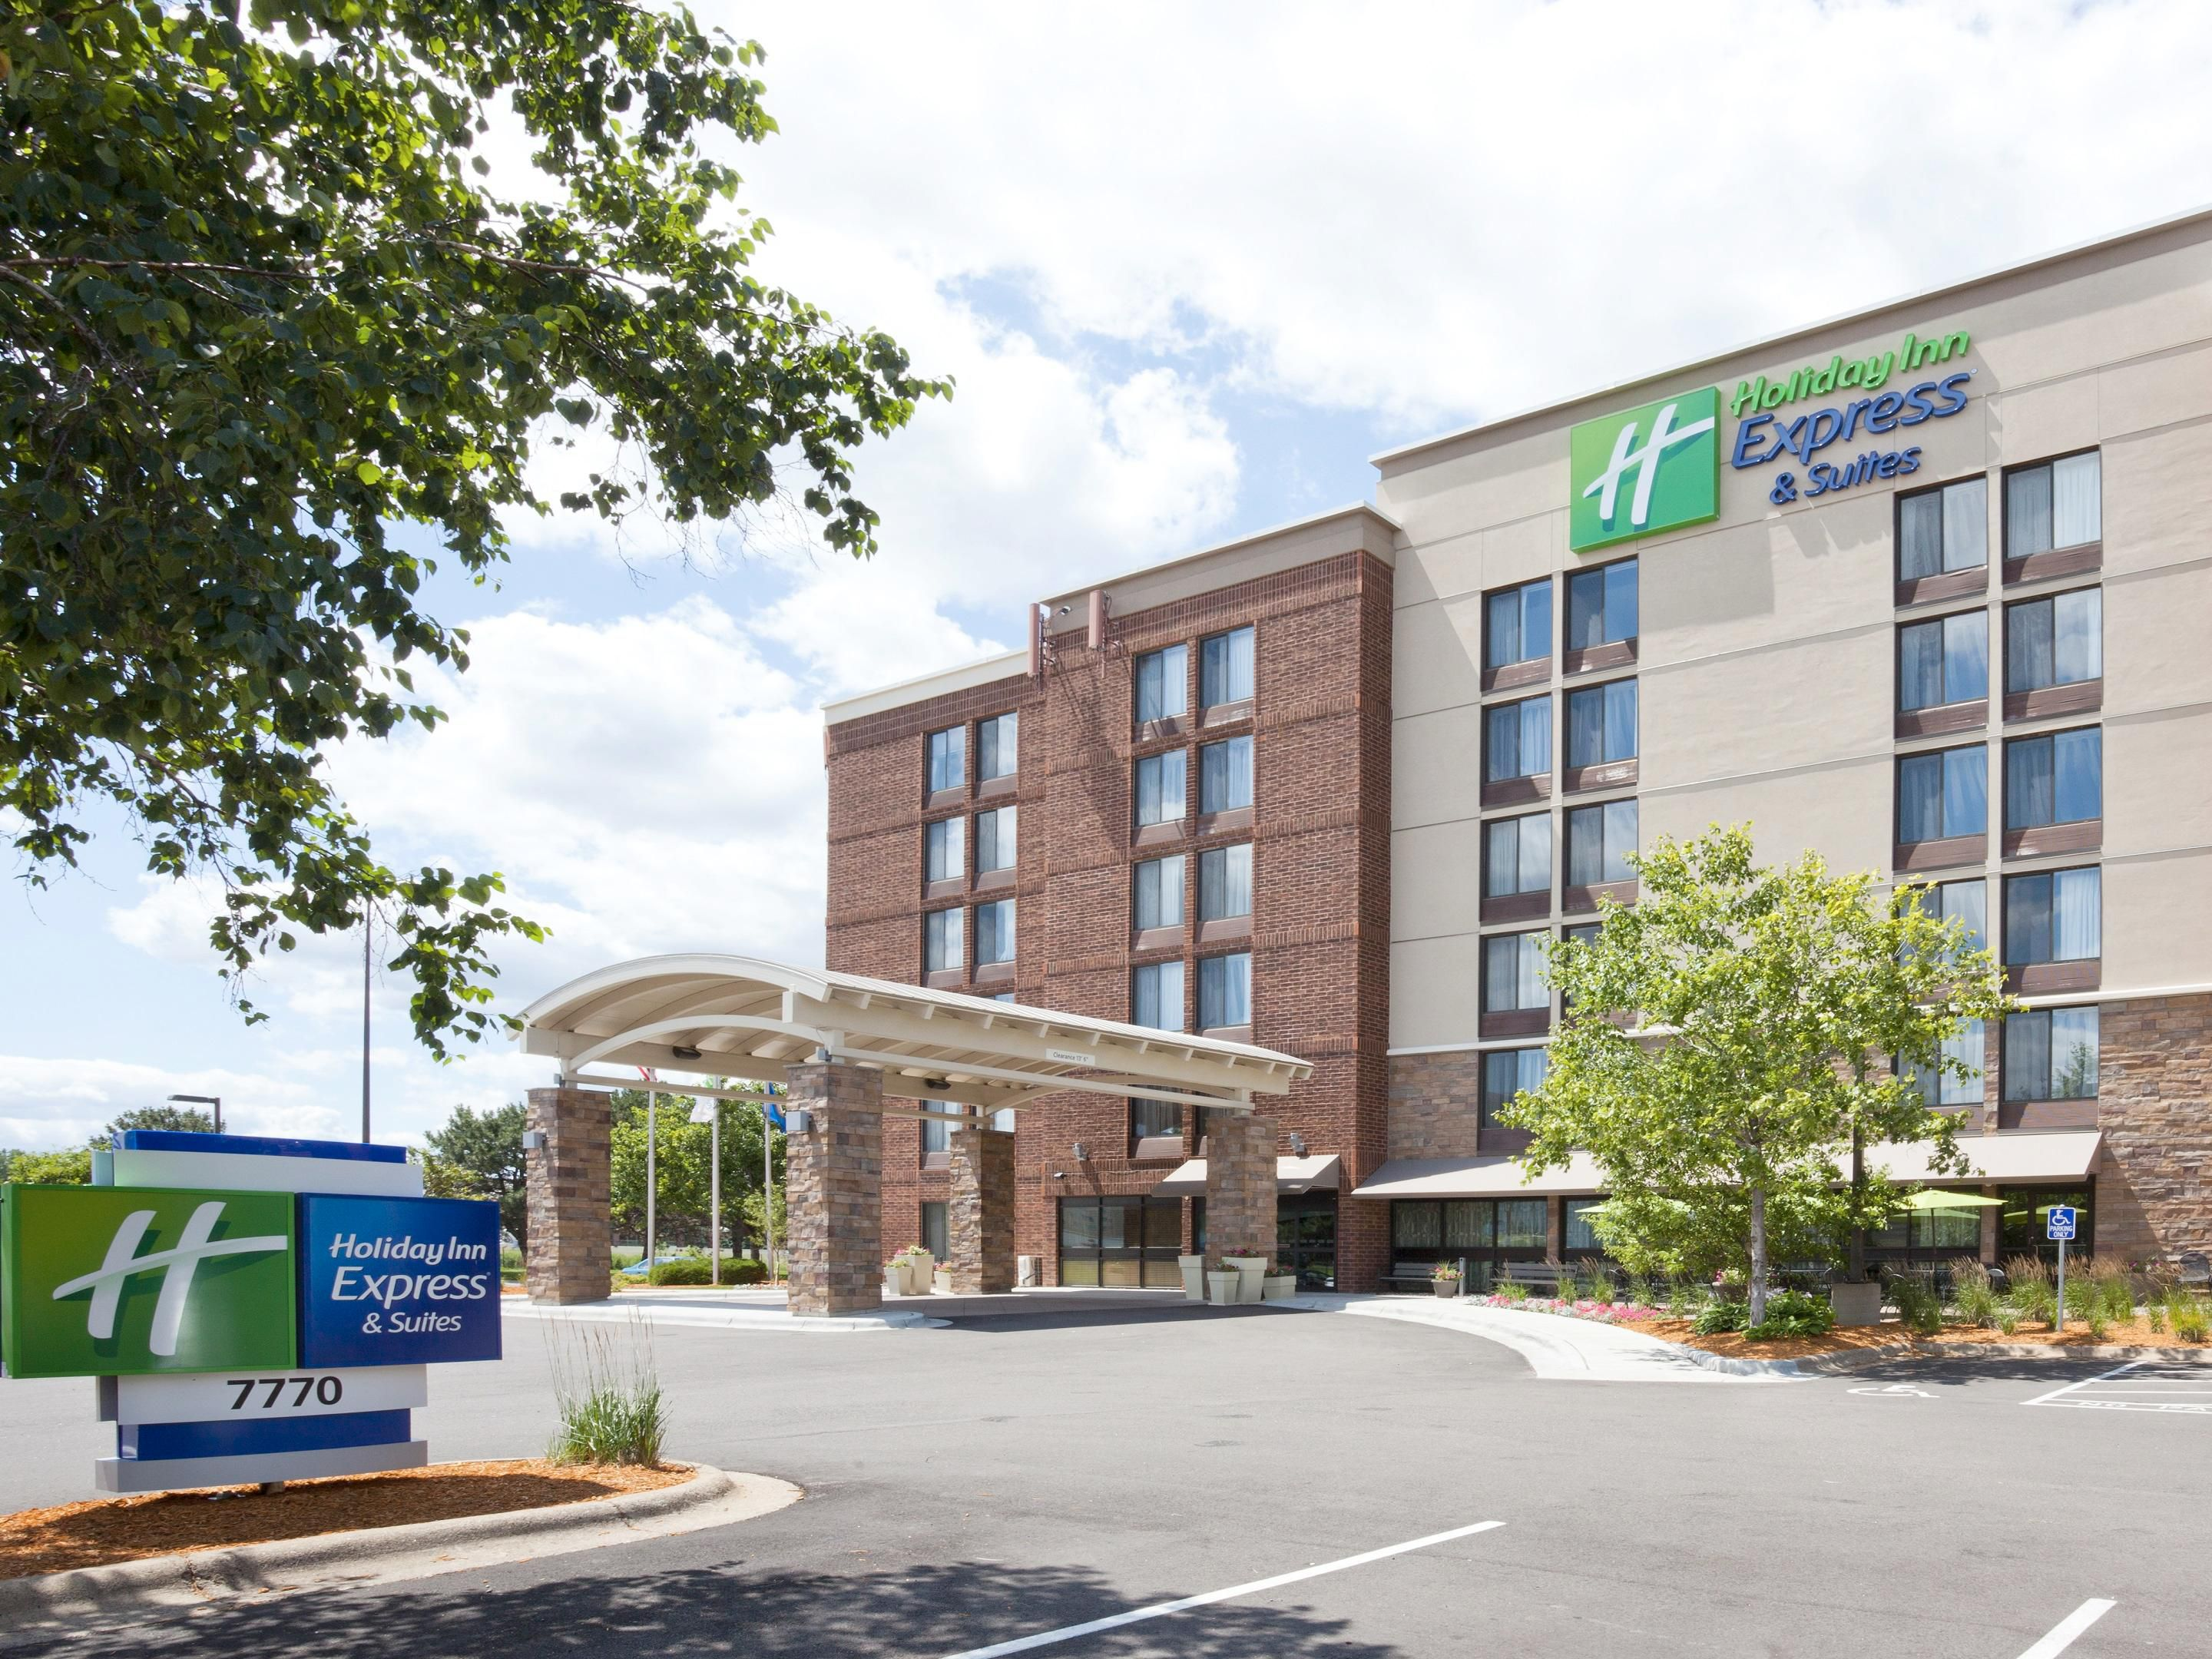 Beautiful Holiday Inn Express U0026 Suites Bloomington   MPLS Arpt Area W Hotel By IHG